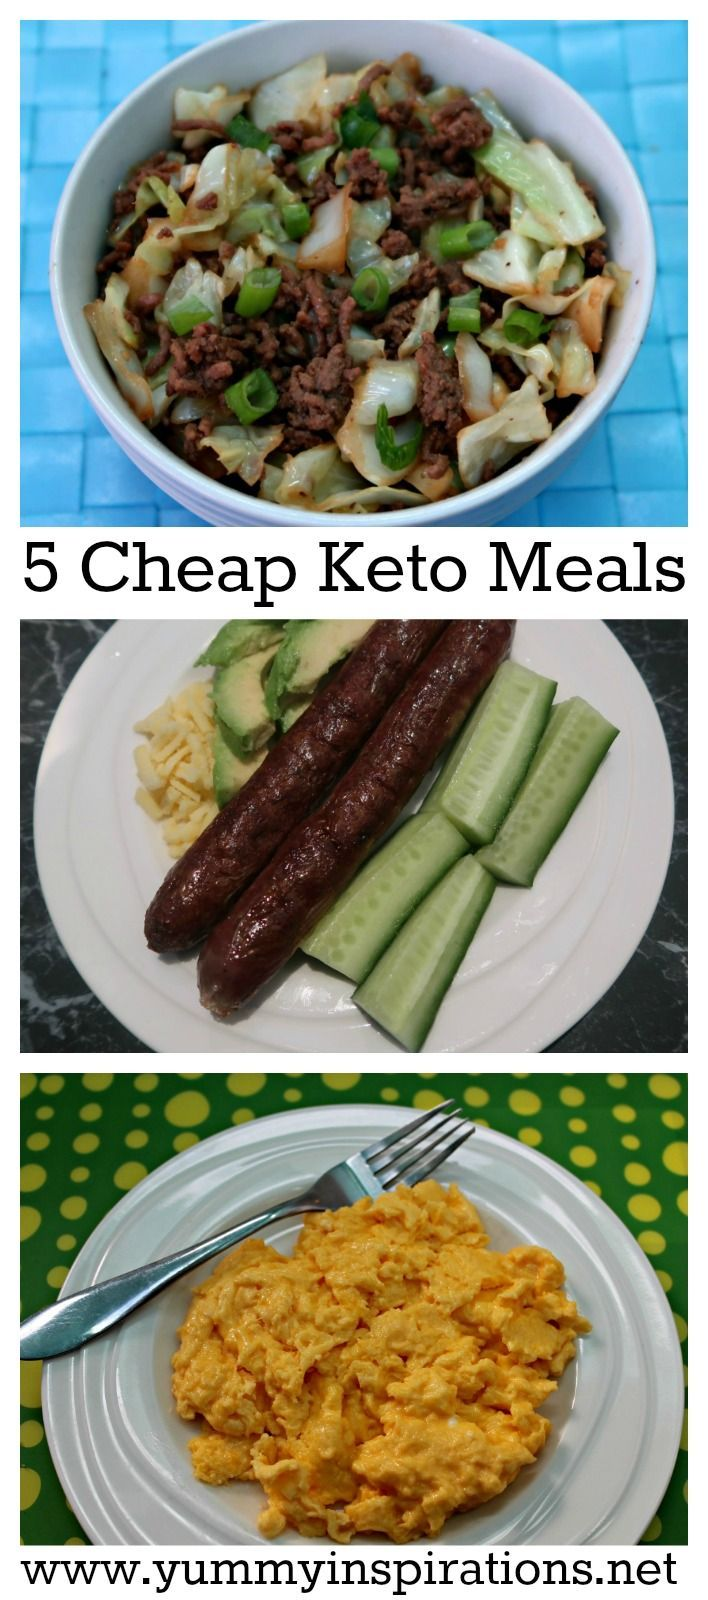 5 Cheap Keto Meals - budget keto diet foods & recipes for dinners and meals - cheap & healthy low carb meals on a budget.